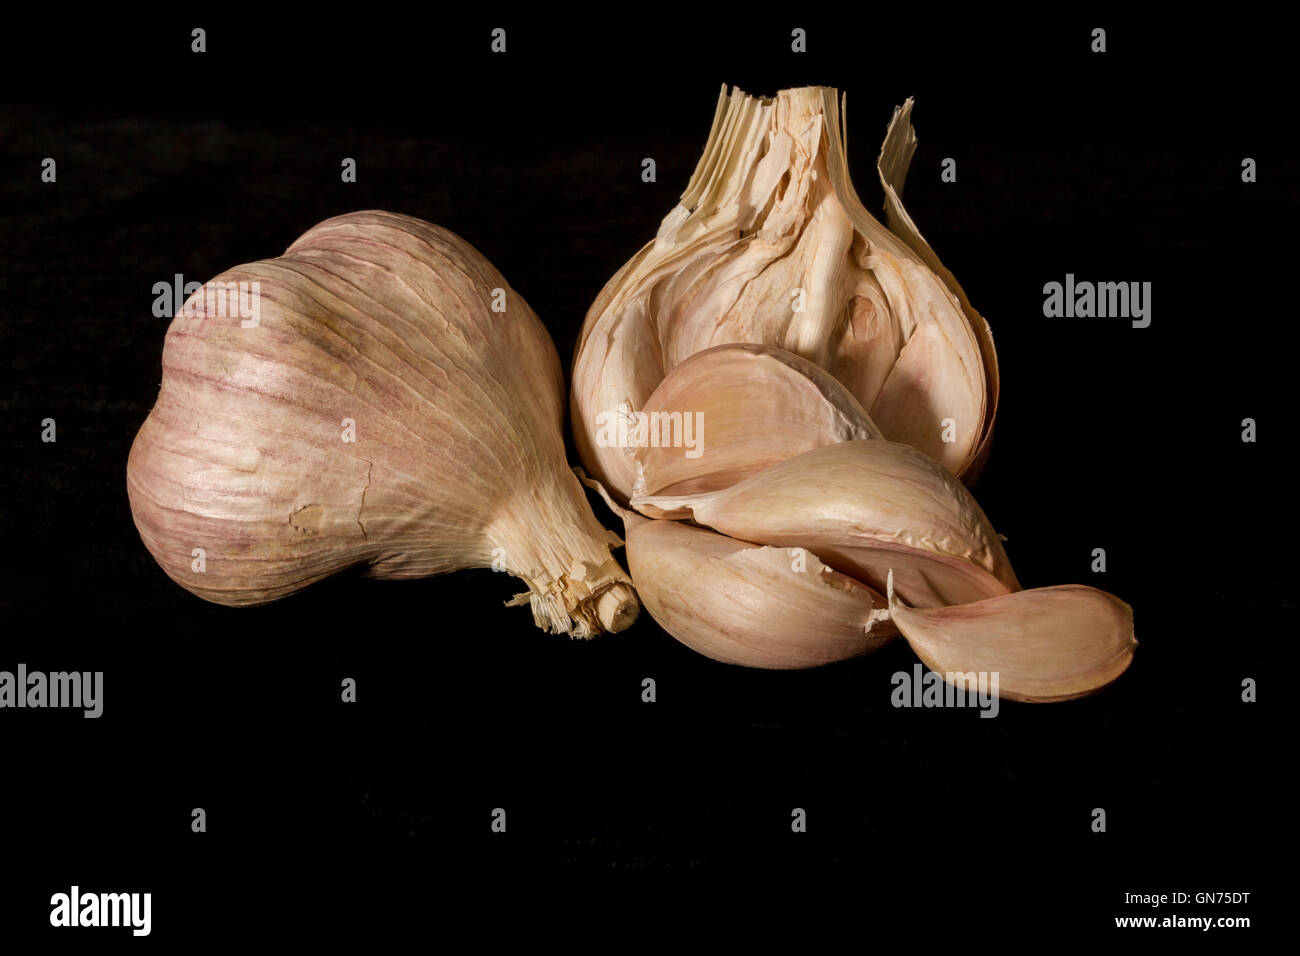 Close up of Elephant Garlic on a black background - Stock Image